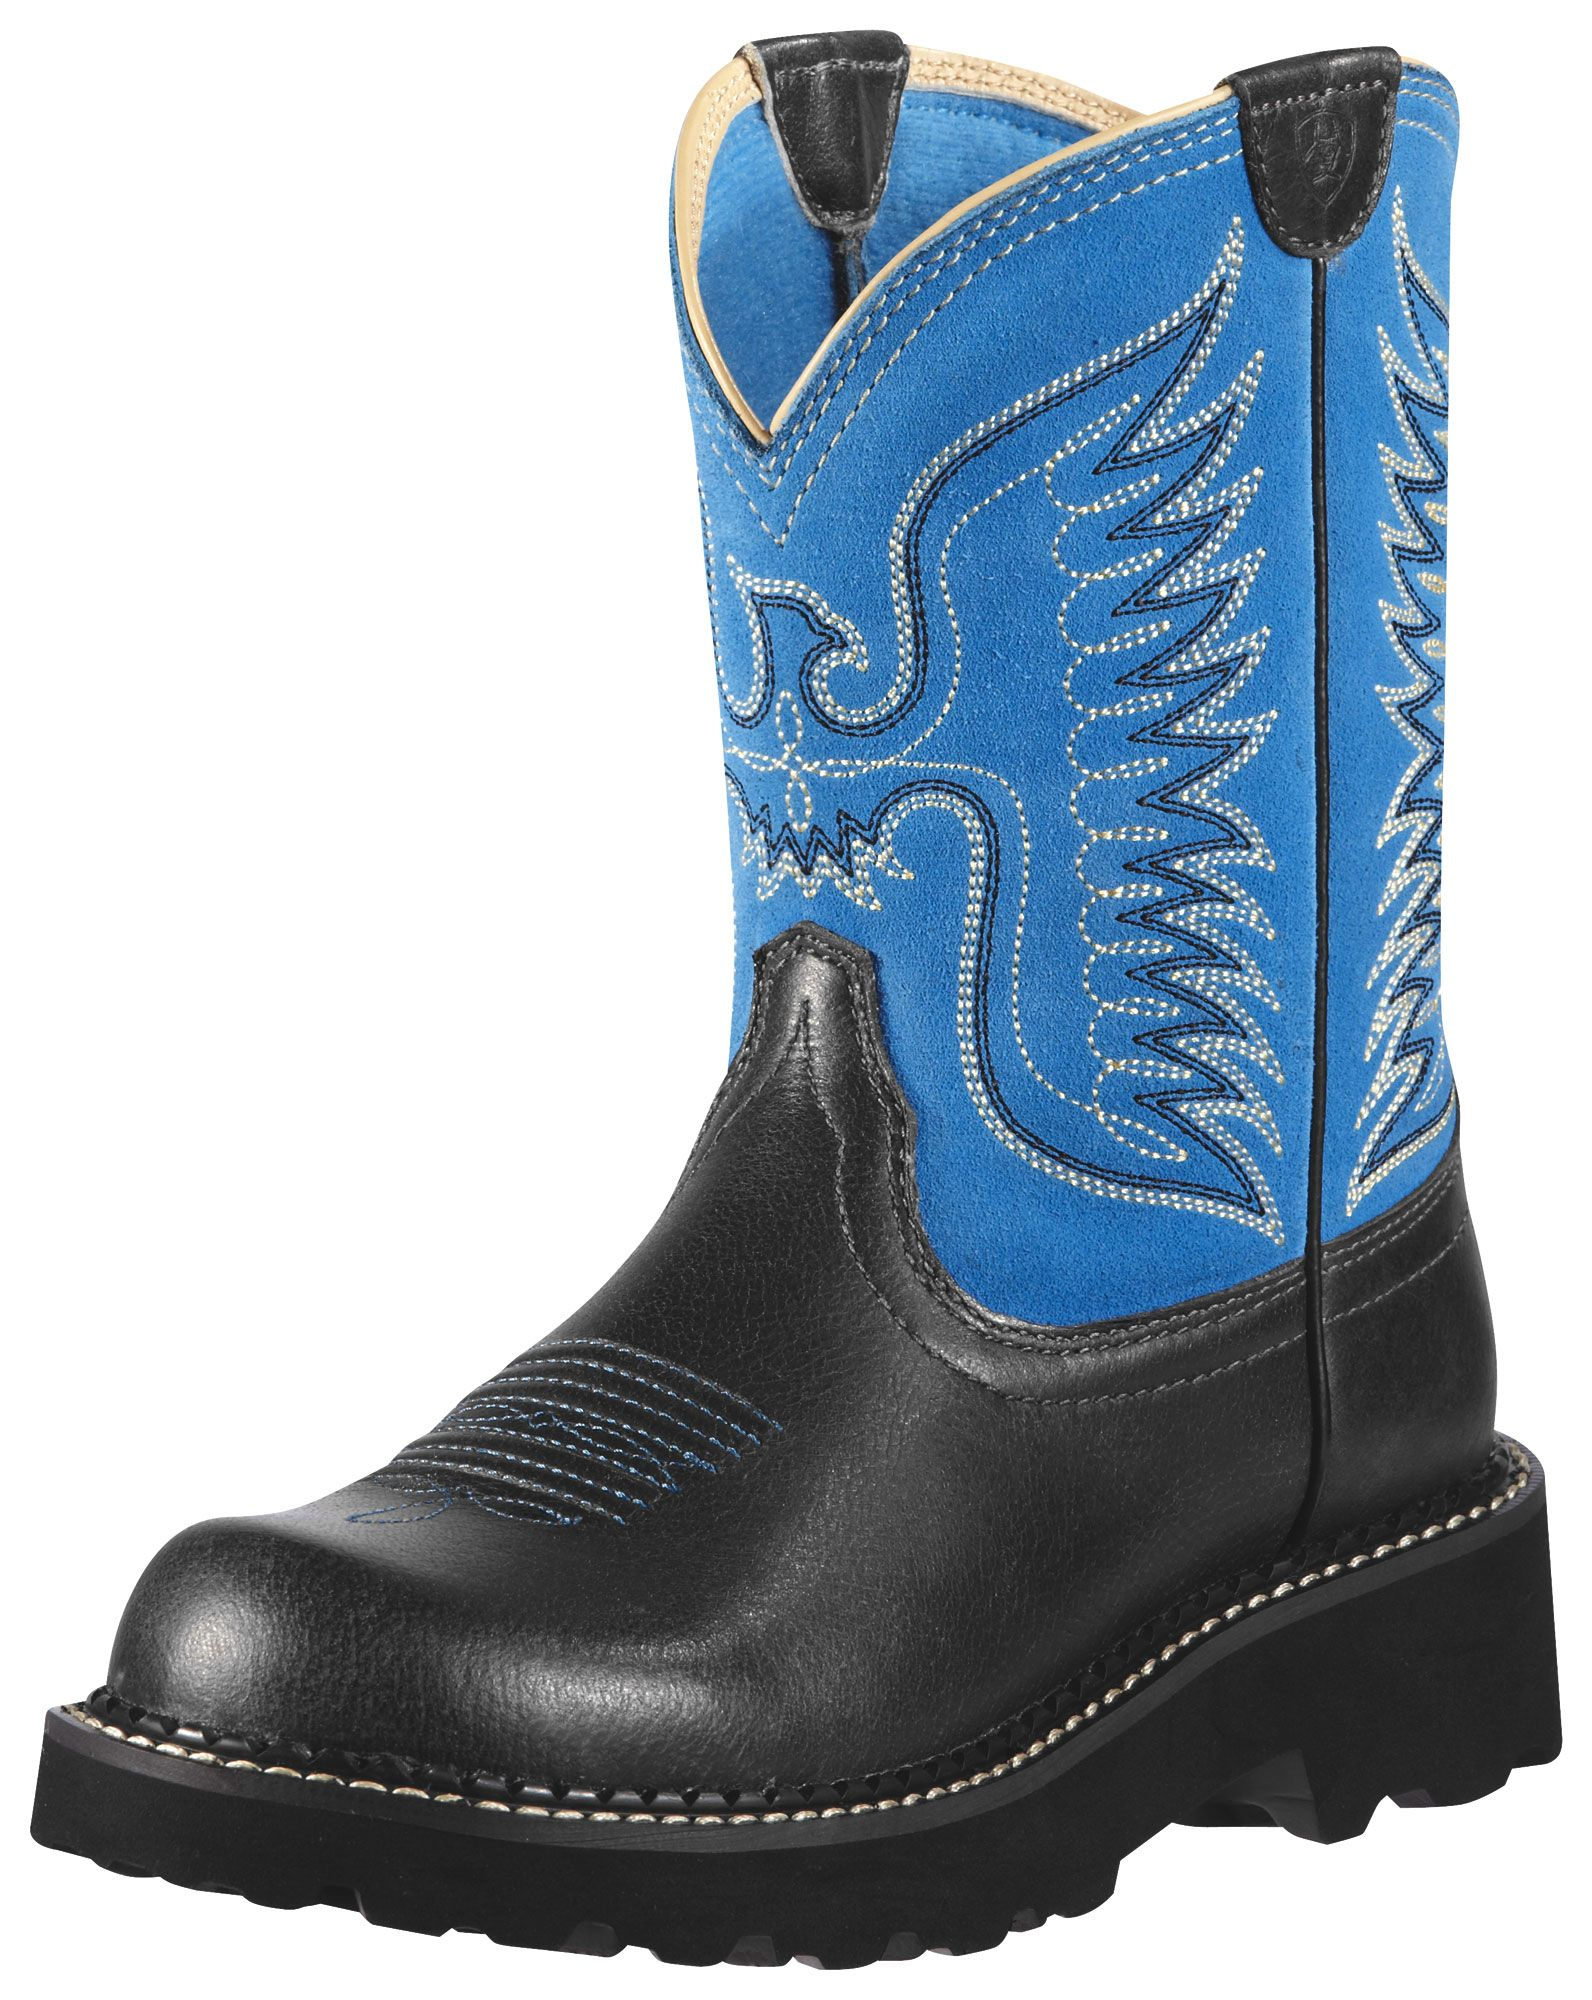 Boots, Blue cowgirl boots, Cowgirl boots